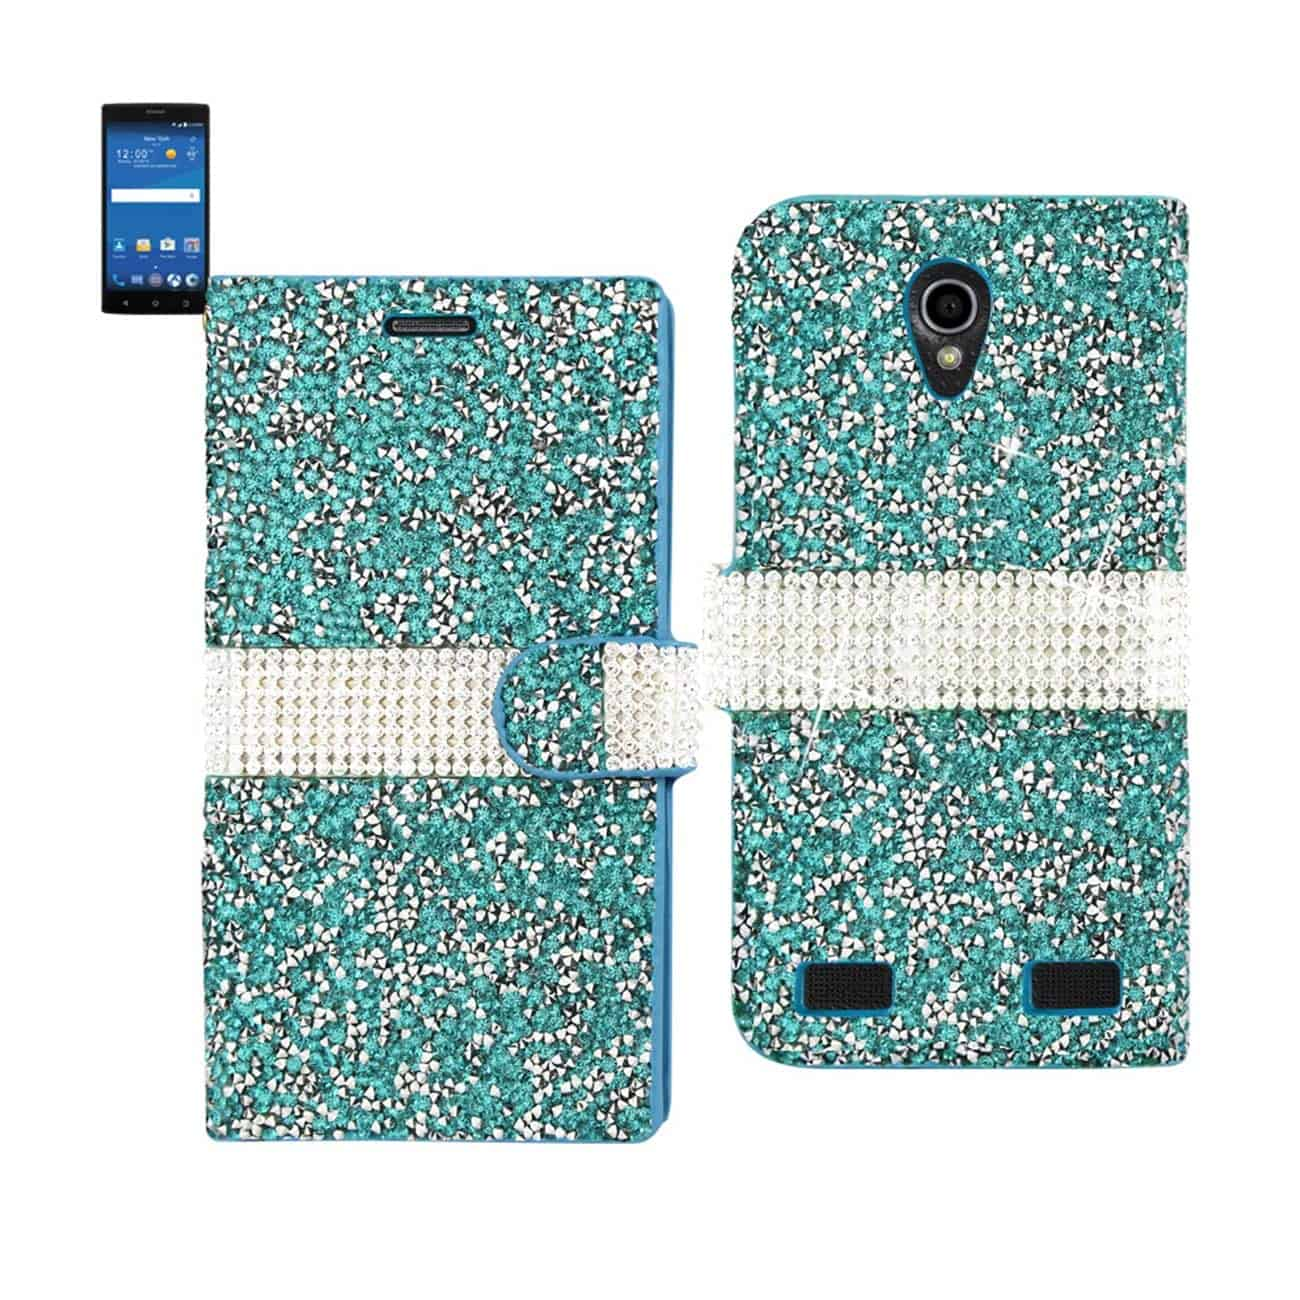 ZTE ZMAX 2 JEWELRY RHINESTONE WALLET CASE IN BLUE